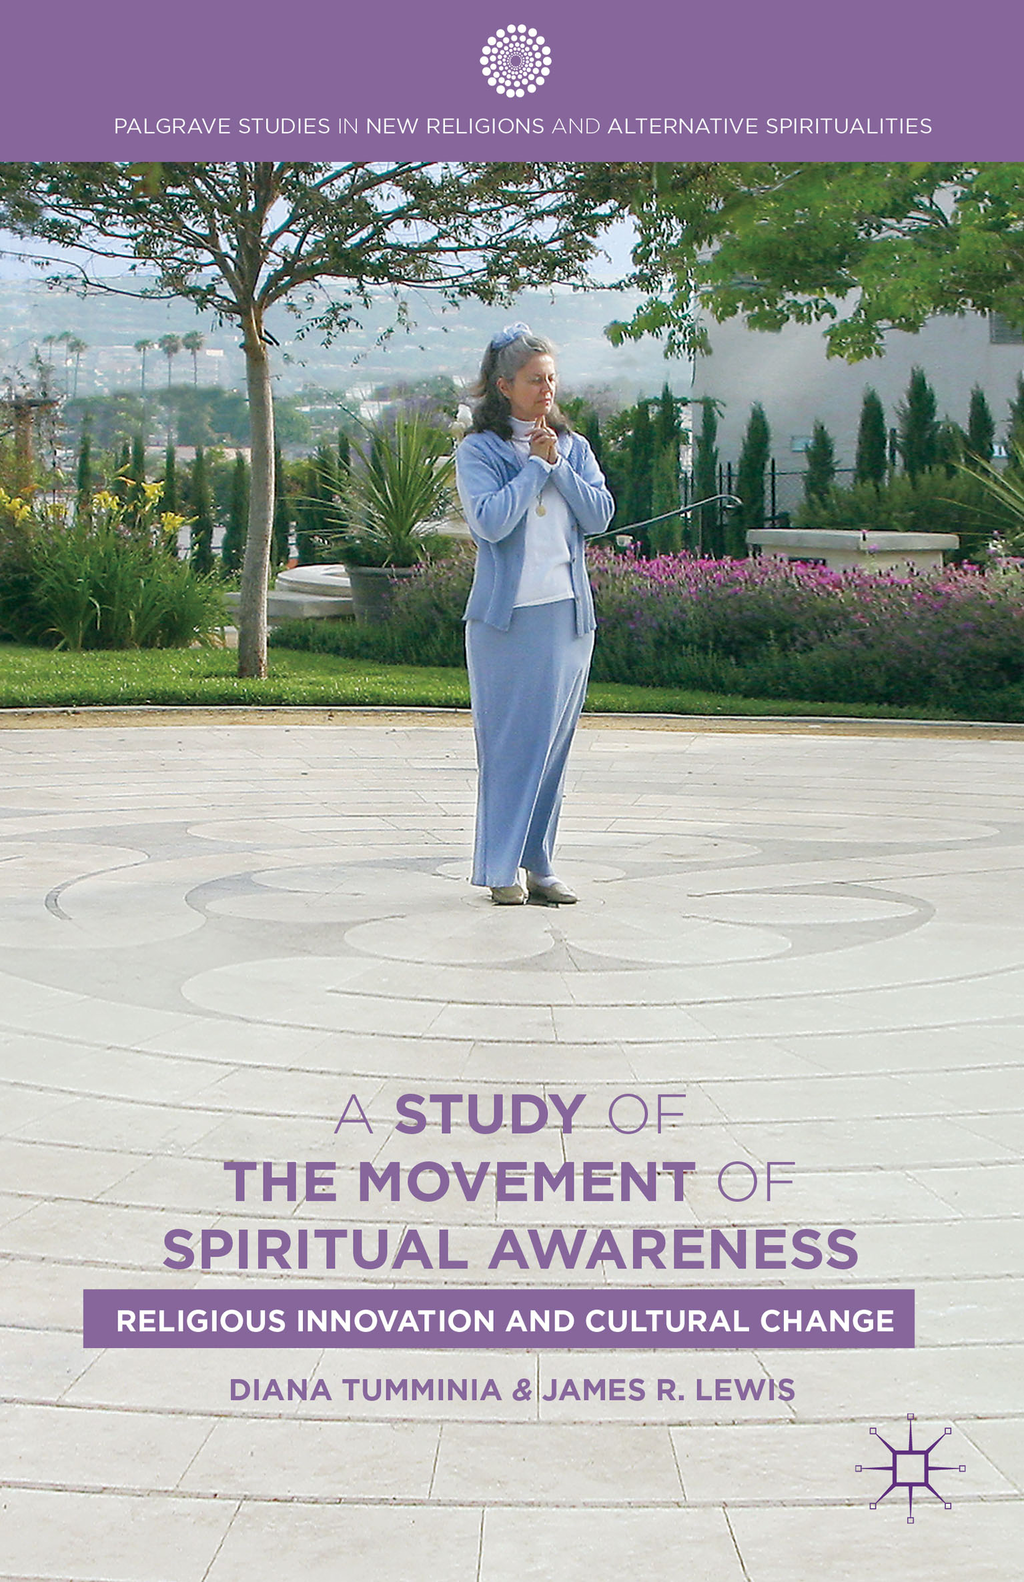 A Study of the Movement of Spiritual Awareness Religious Innovation and Cultural Change